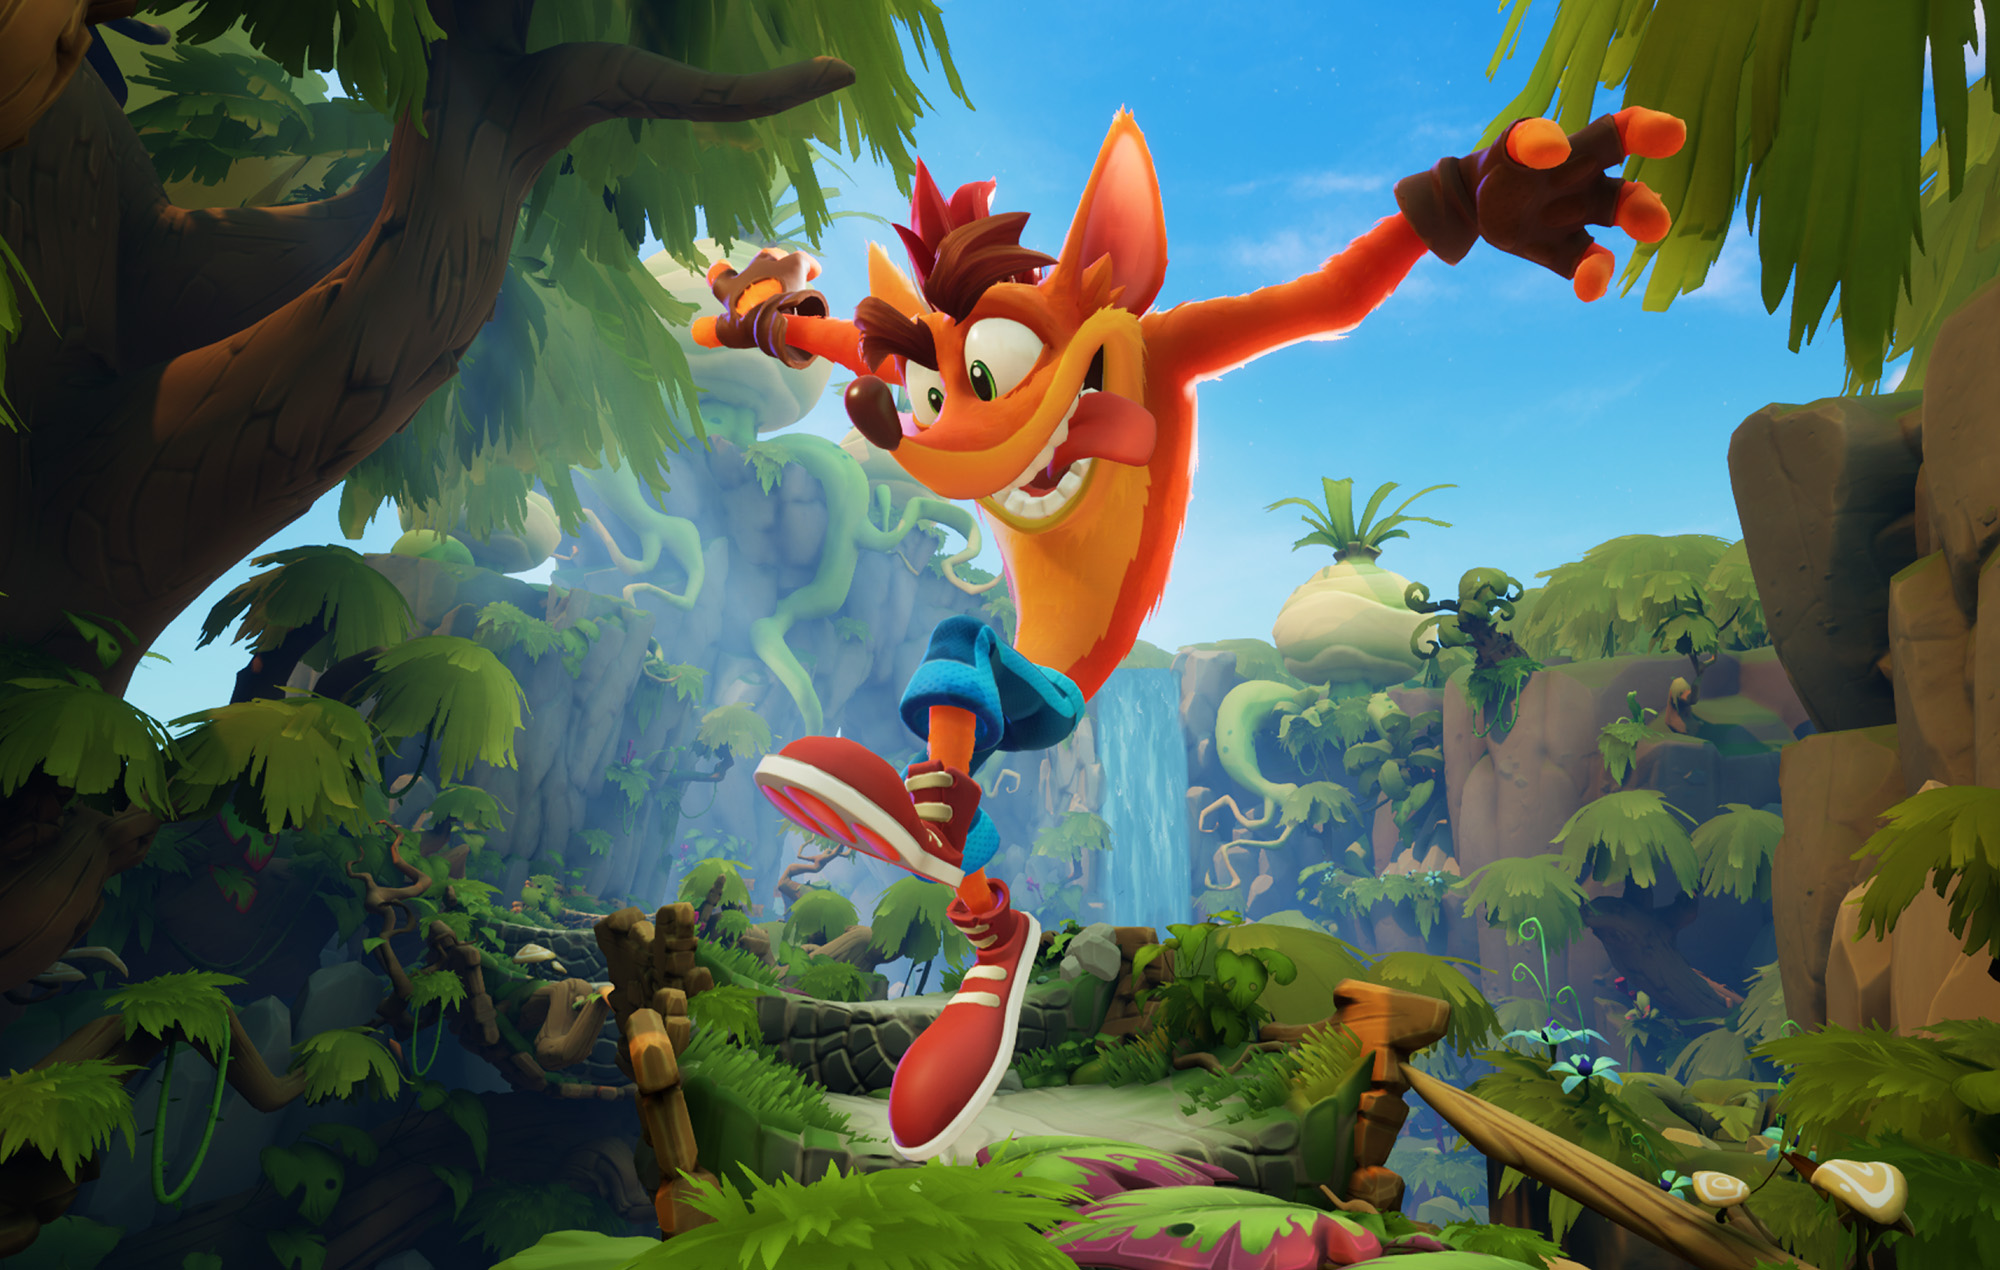 First Look: 'Crash Bandicoot 4: It's About Time' proves the franchise can  evolve